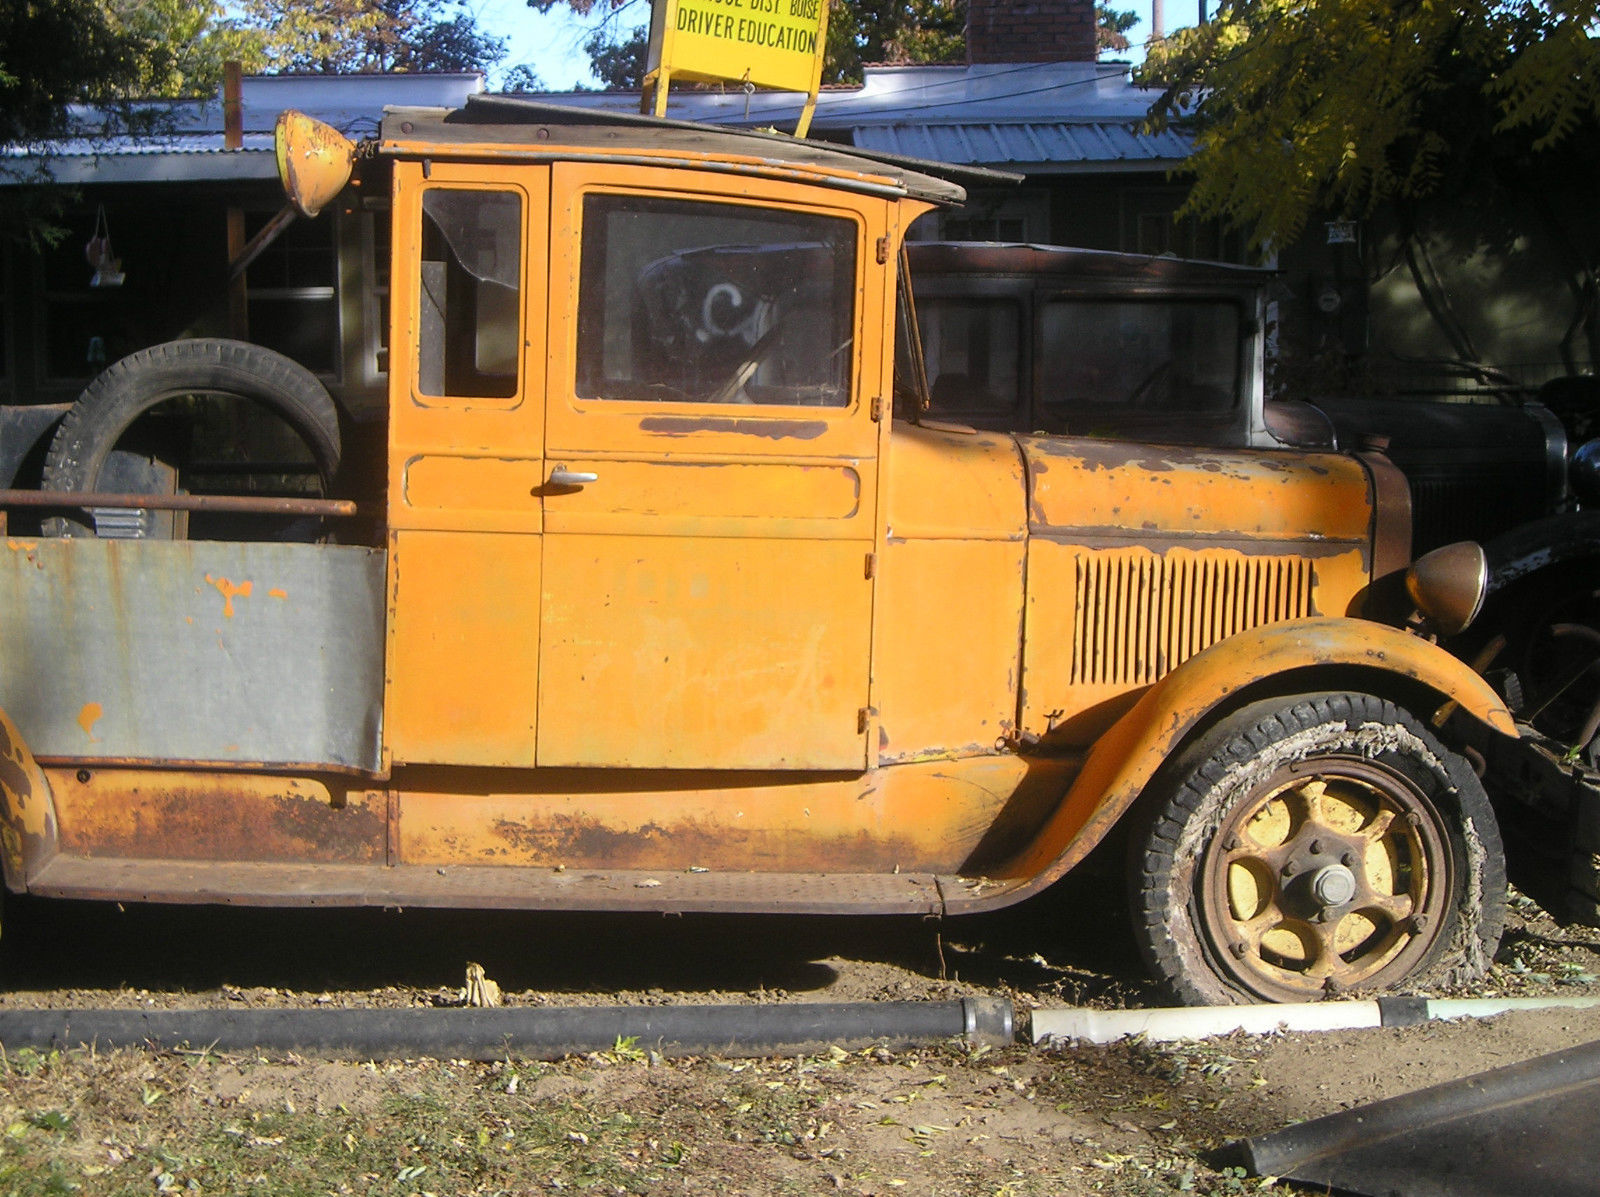 Cars For Sale Boise >> 1928 Graham Brothers work truck. Original tow Truck VERY UNIQUE for sale in Boise, Idaho, United ...